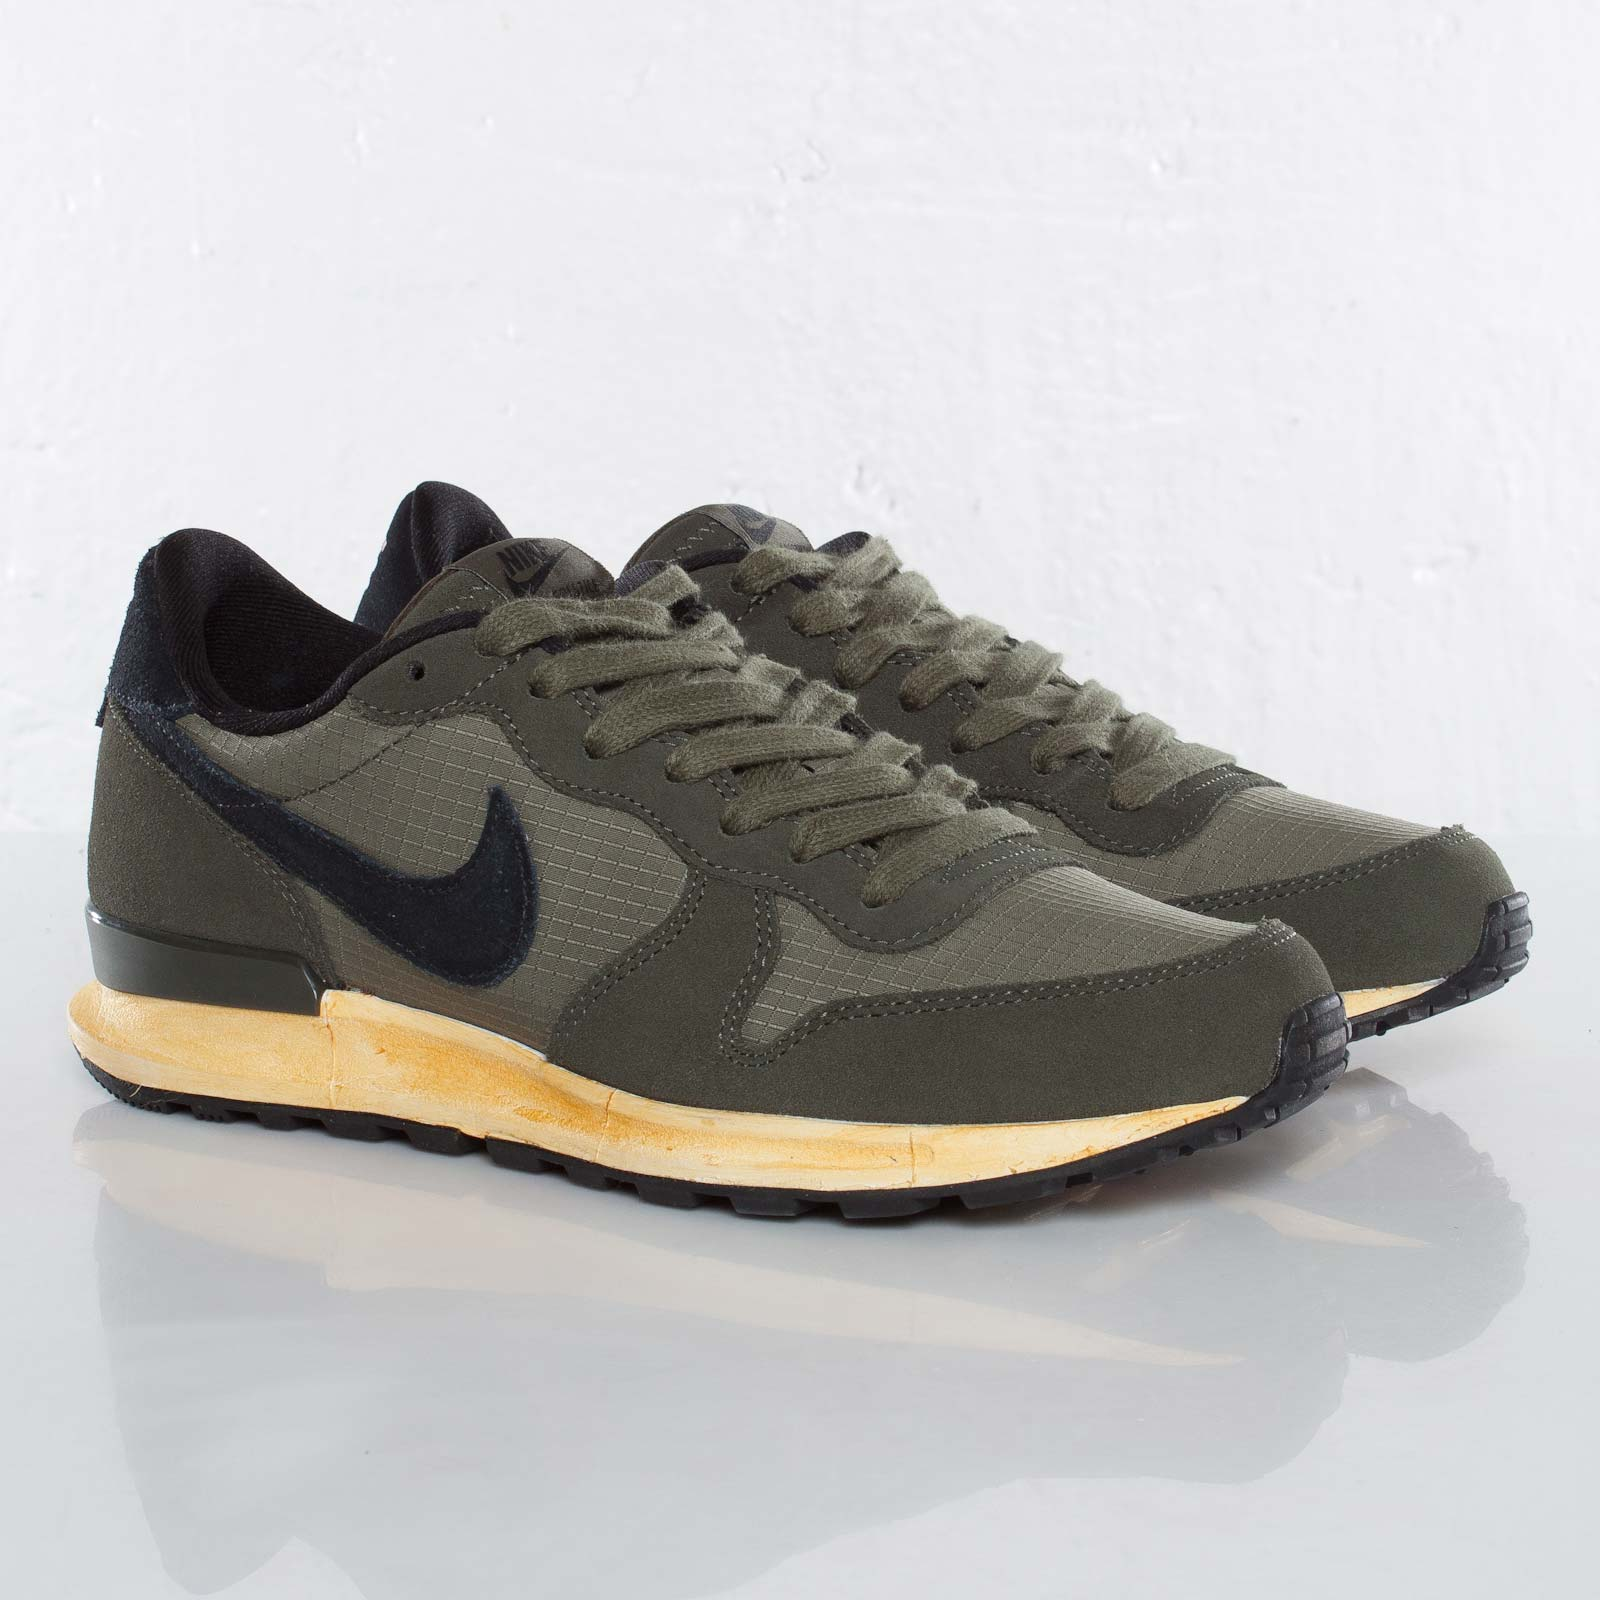 1b7be03c31eb Nike Air Solstice - 525260-201 - Sneakersnstuff